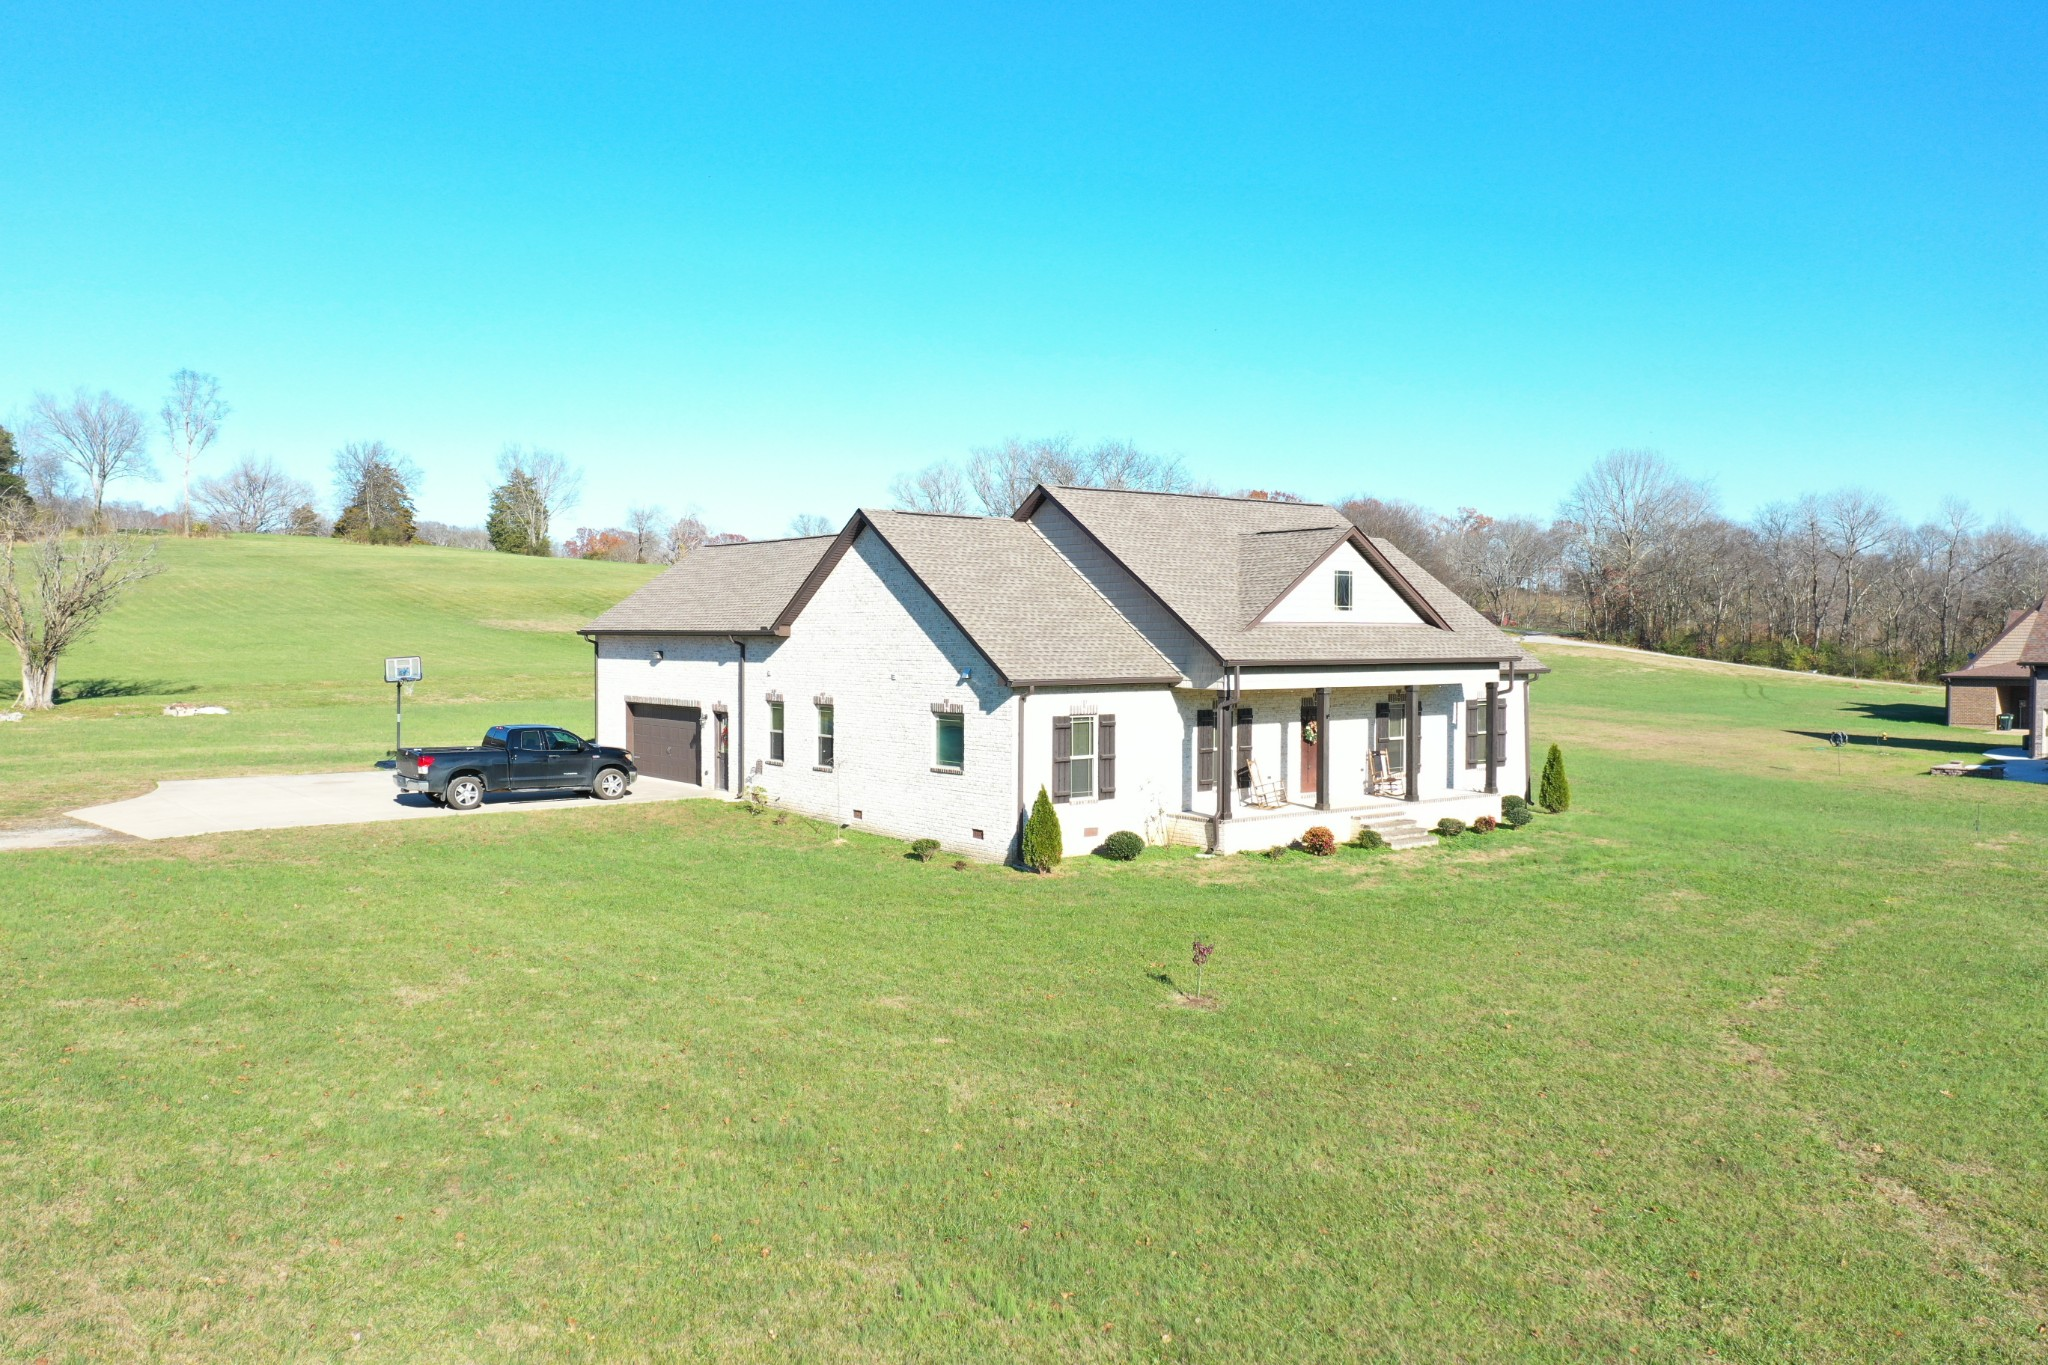 1332 Brinkley Branch Rd Property Photo - Gallatin, TN real estate listing